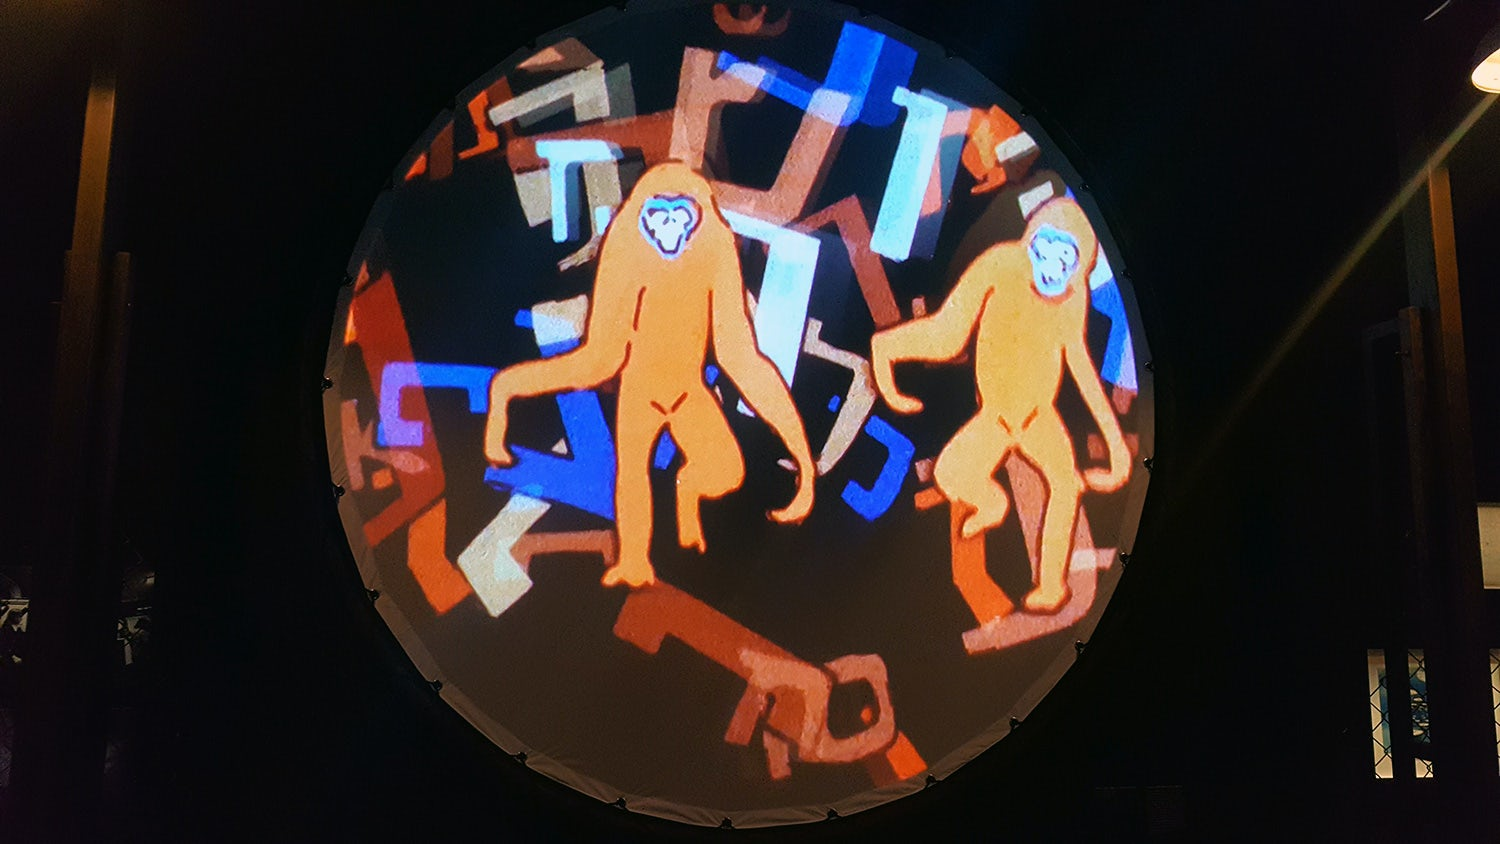 Ian Emes 'French Windows' animation plays on a circular screen - a replica of the one created by lighting and production designer Arthur Max